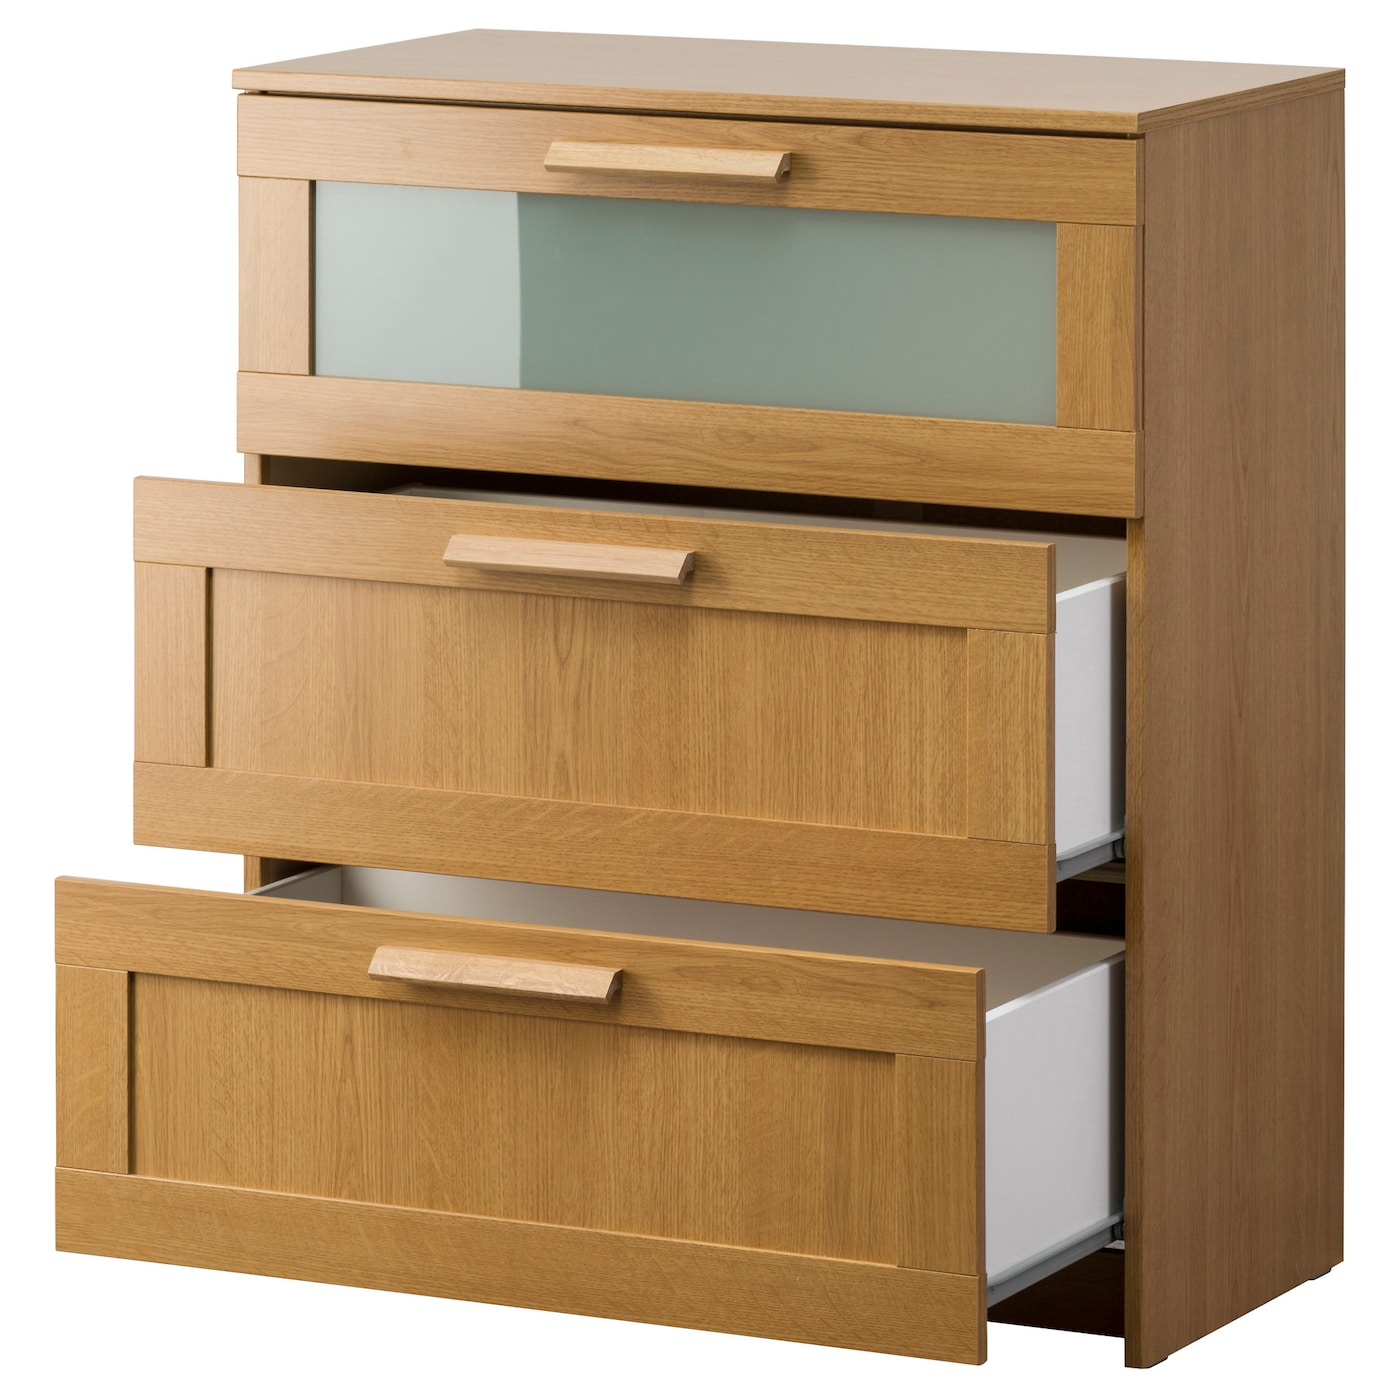 brimnes chest of 3 drawers oak effect frosted glass 78 x. Black Bedroom Furniture Sets. Home Design Ideas